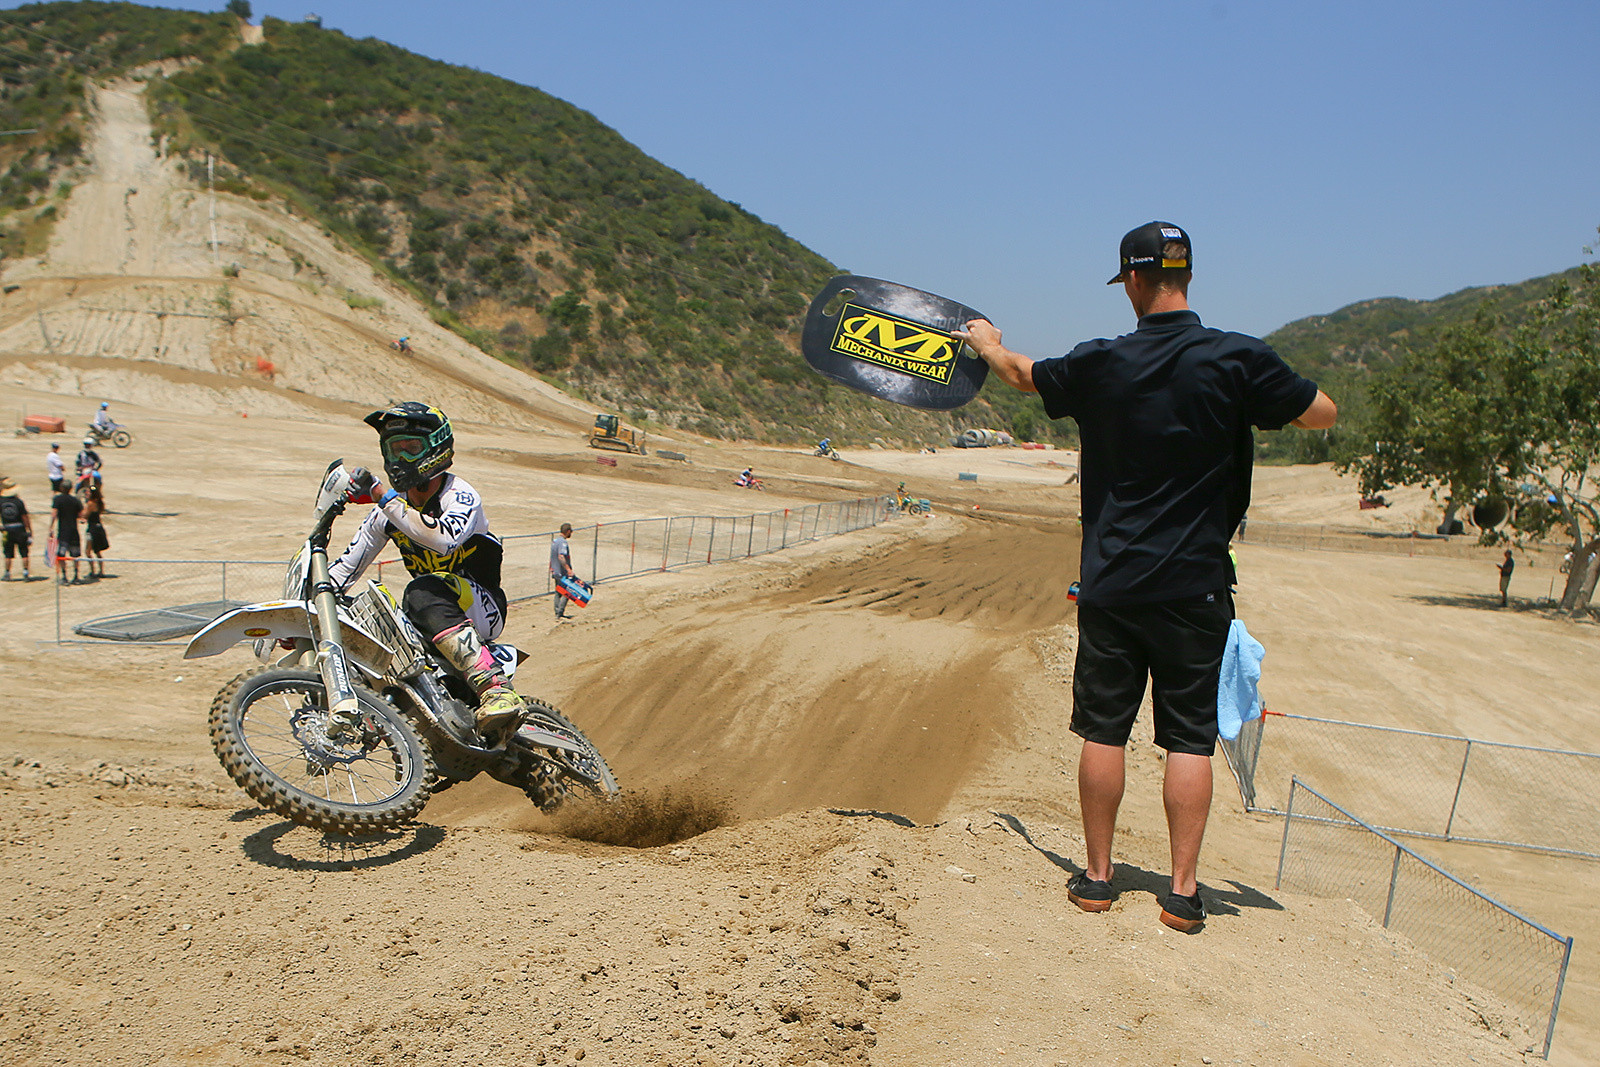 Dean Wilson showing some serious speed to Daniel Castloo...or was it the other way around?